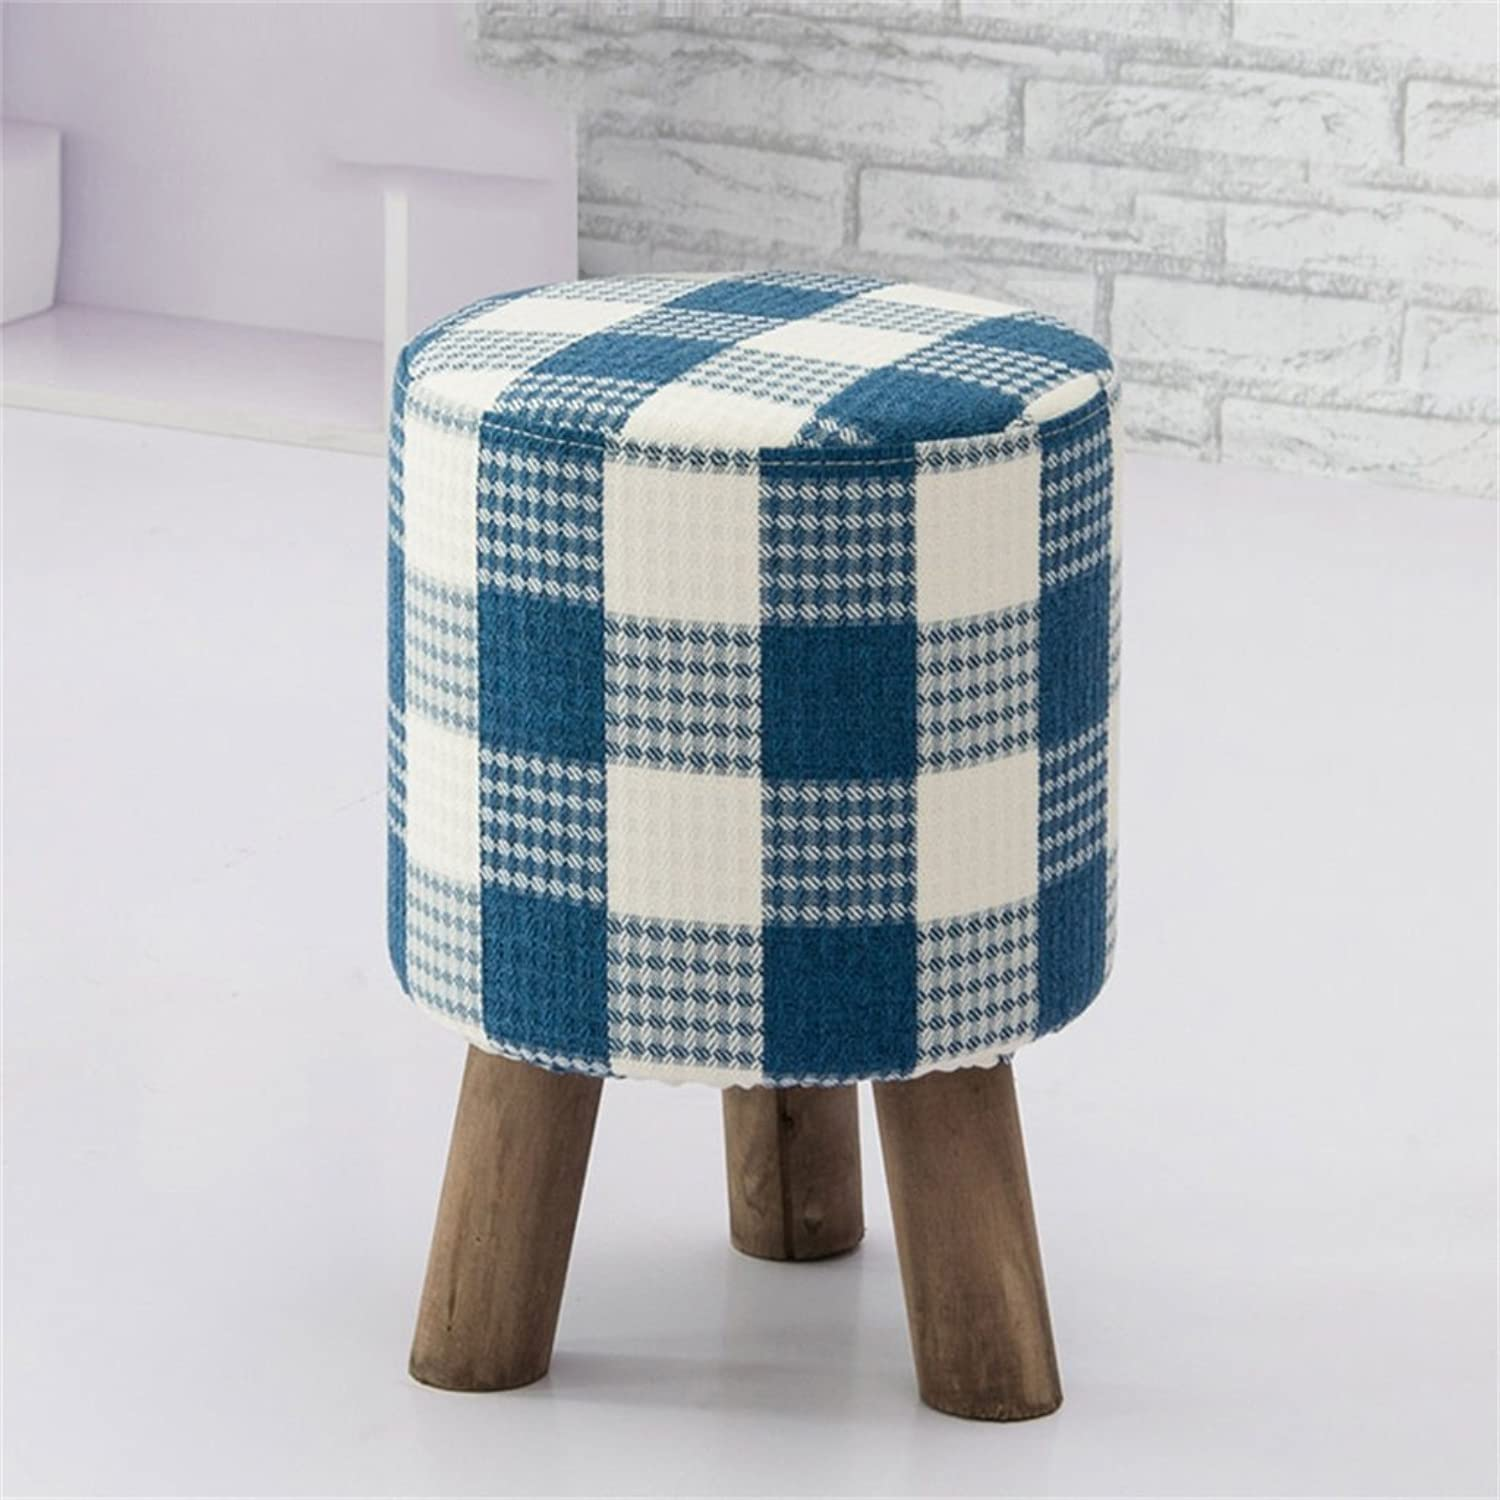 AIDELAI Bar Stool Chair- Solid Wood Change shoes Stool Footstool Test shoes Stool Round Upholstered Footstools 3 4 Wood Leg Pouffes Stool Fabric Cover Saddle Seat (color     2)